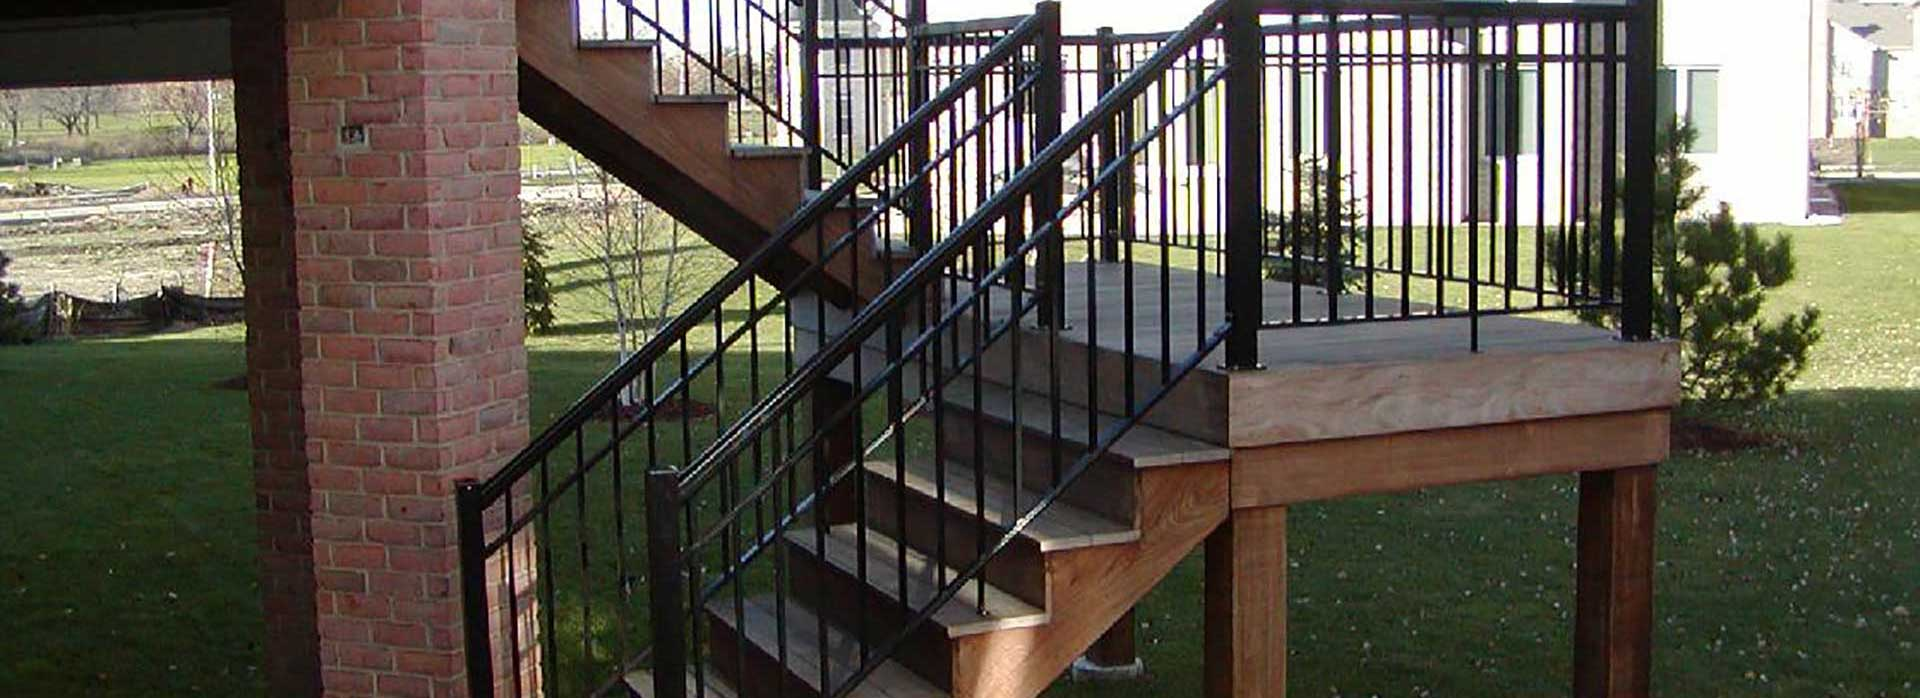 28 Porch Stair Railing Kits Vinyl Railing Systems Stair Railings Building Products 25